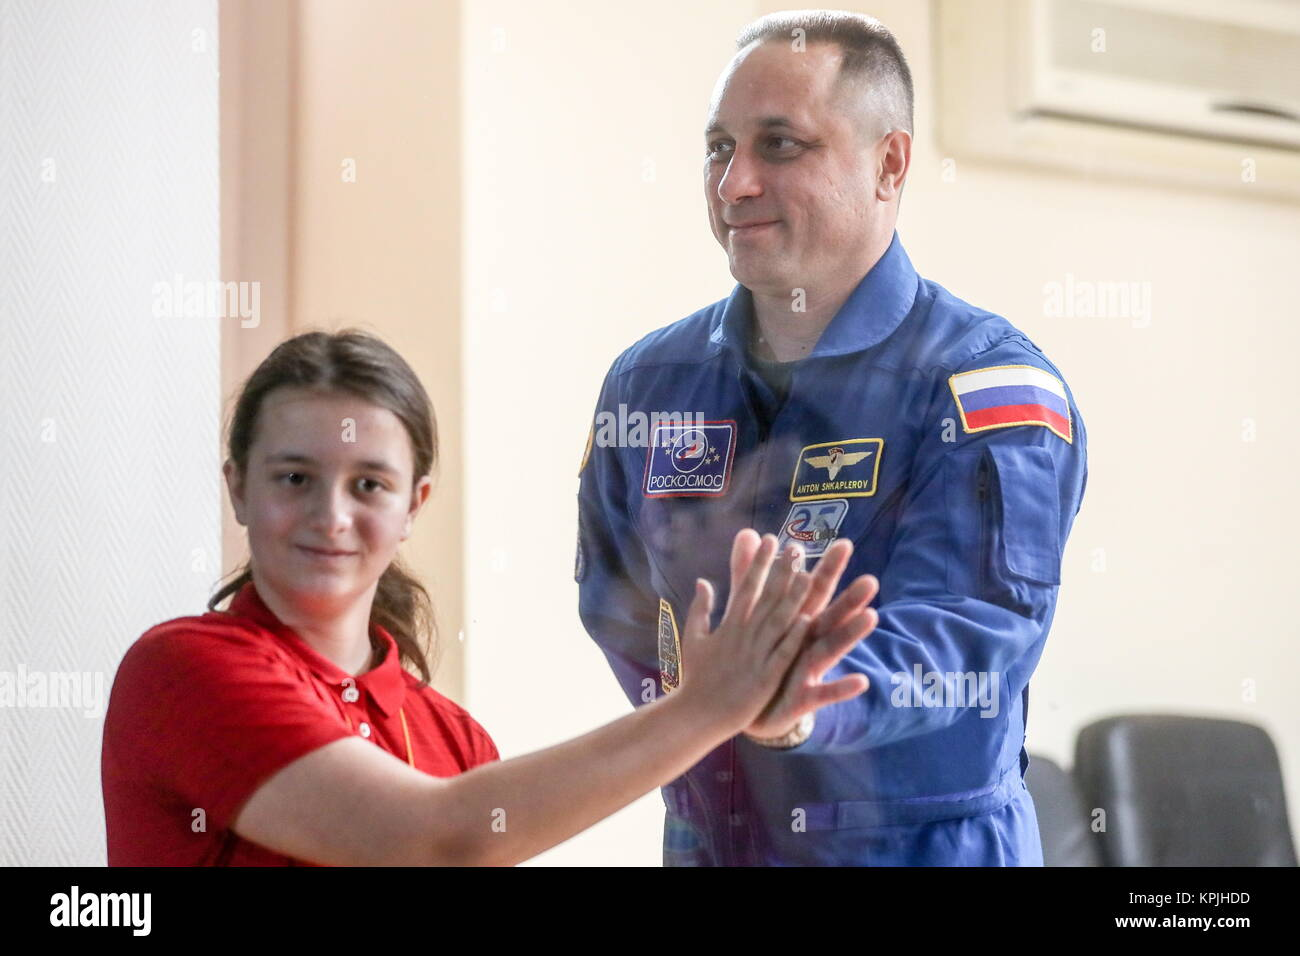 Baikonur, Kazakhstan. 16th Dec, 2017. A member of ISS Expedition 54/55 prime crew, Russian cosmonaut Anton Shkaplerov - Stock Image